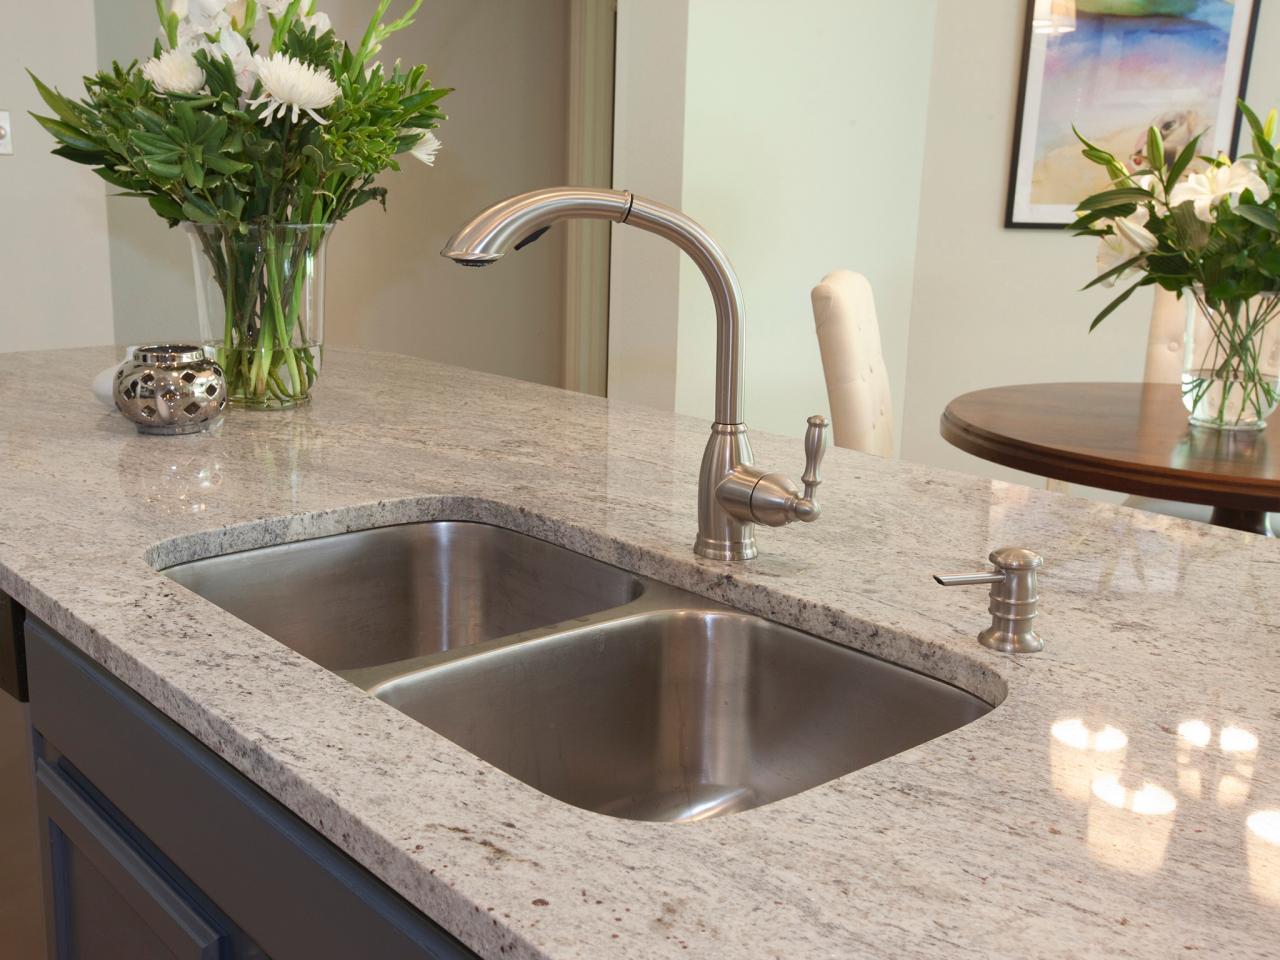 Granite countertops most popular favorite - Granite Countertops Most Popular Favorite 4